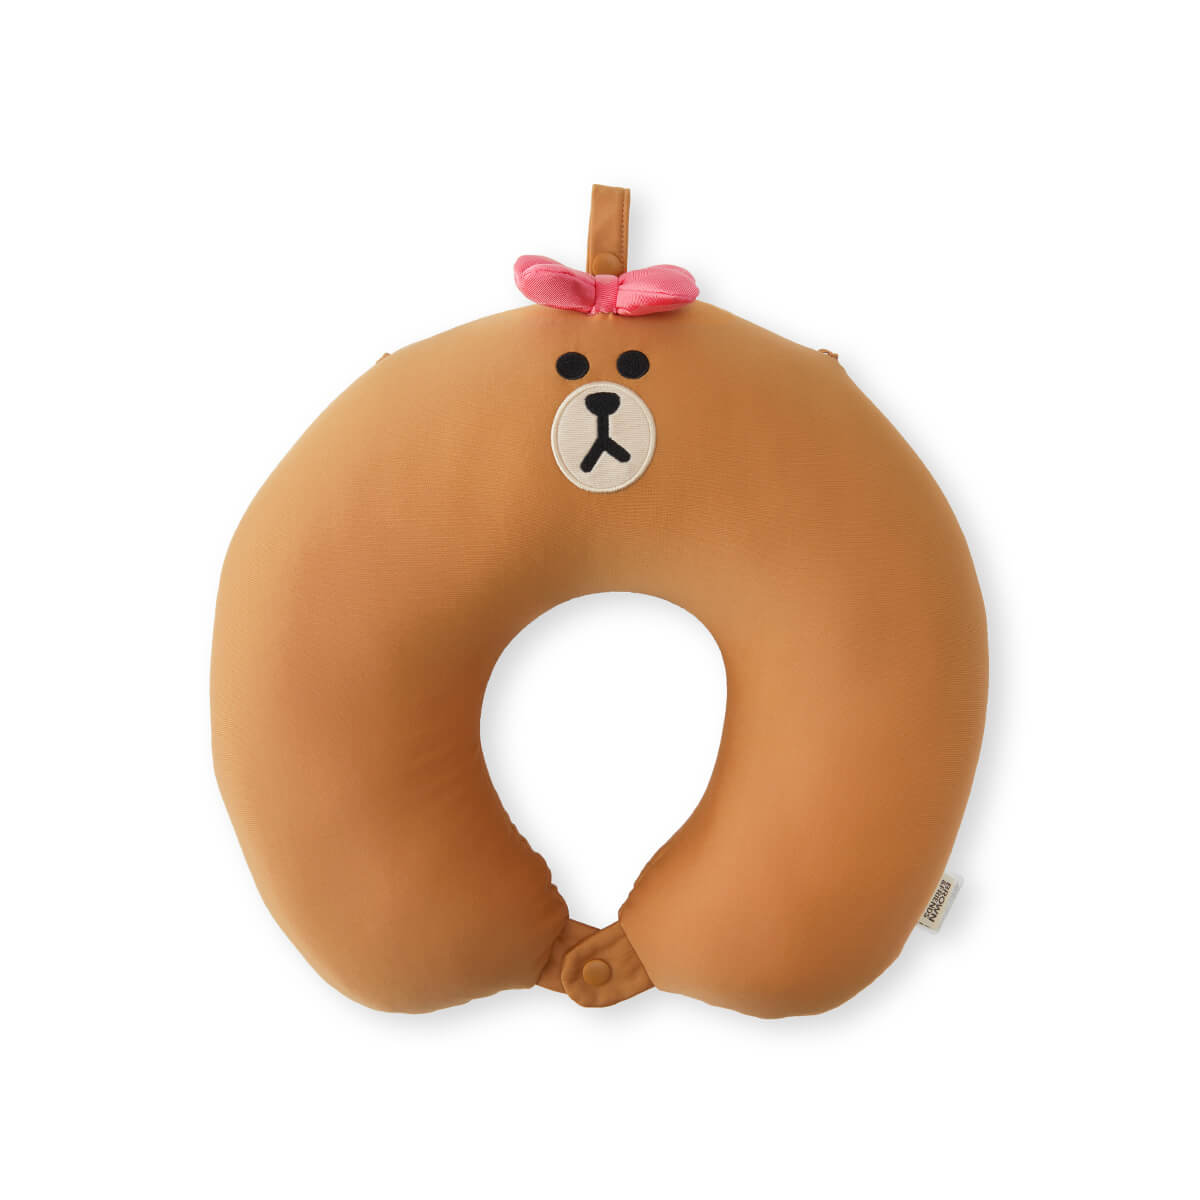 LINE FRIENDS CHOCO 2 in 1 Beads Neck Cushion